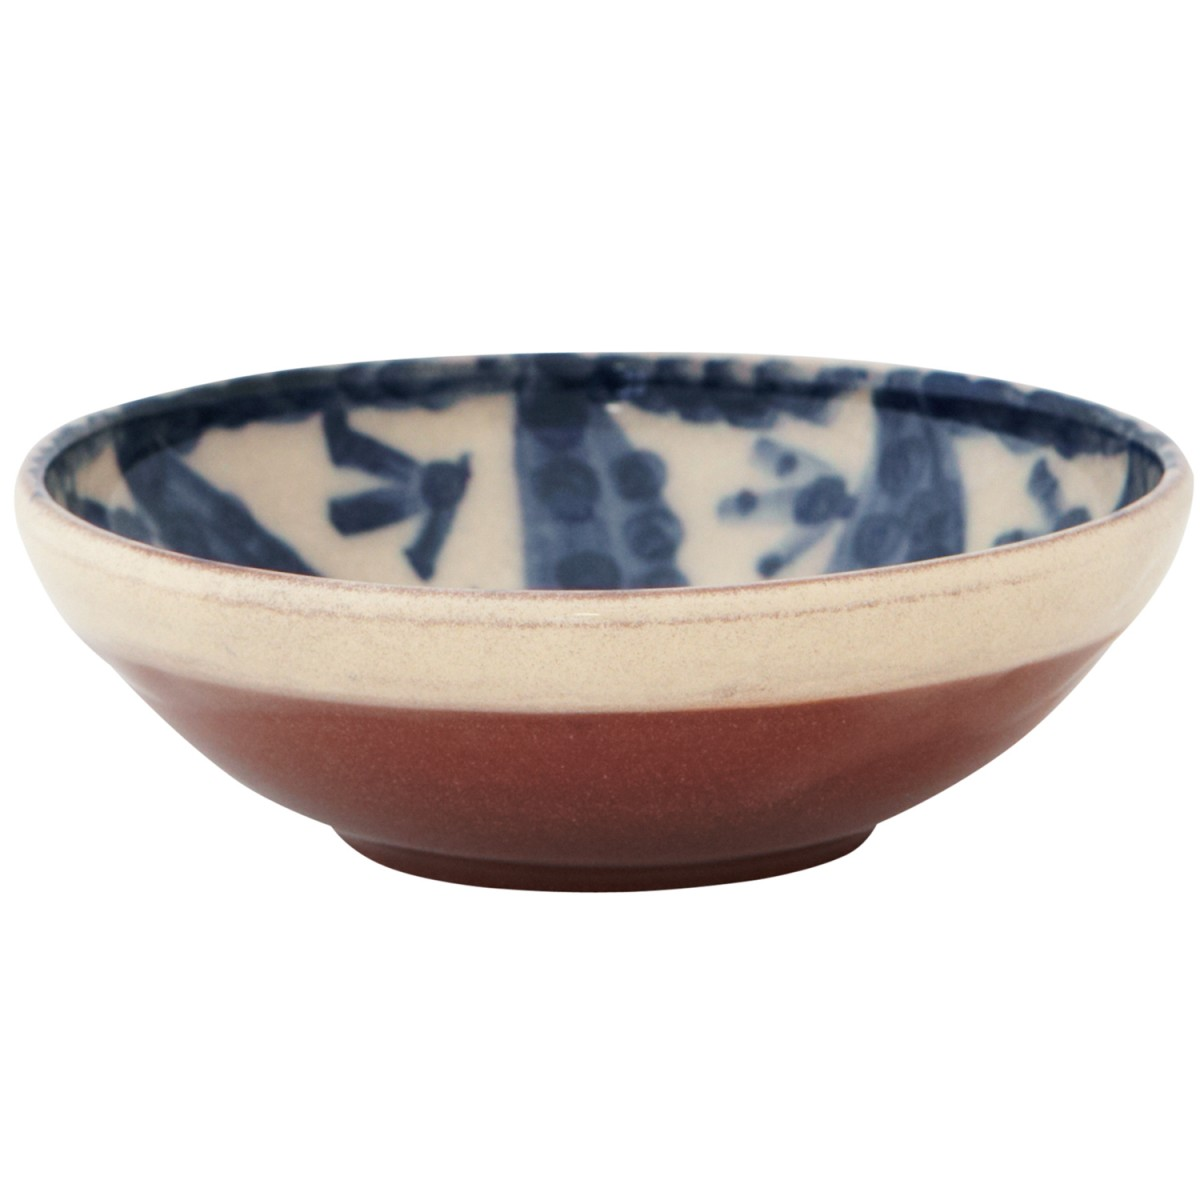 Ceramic Bowls for Sale-Flower-1